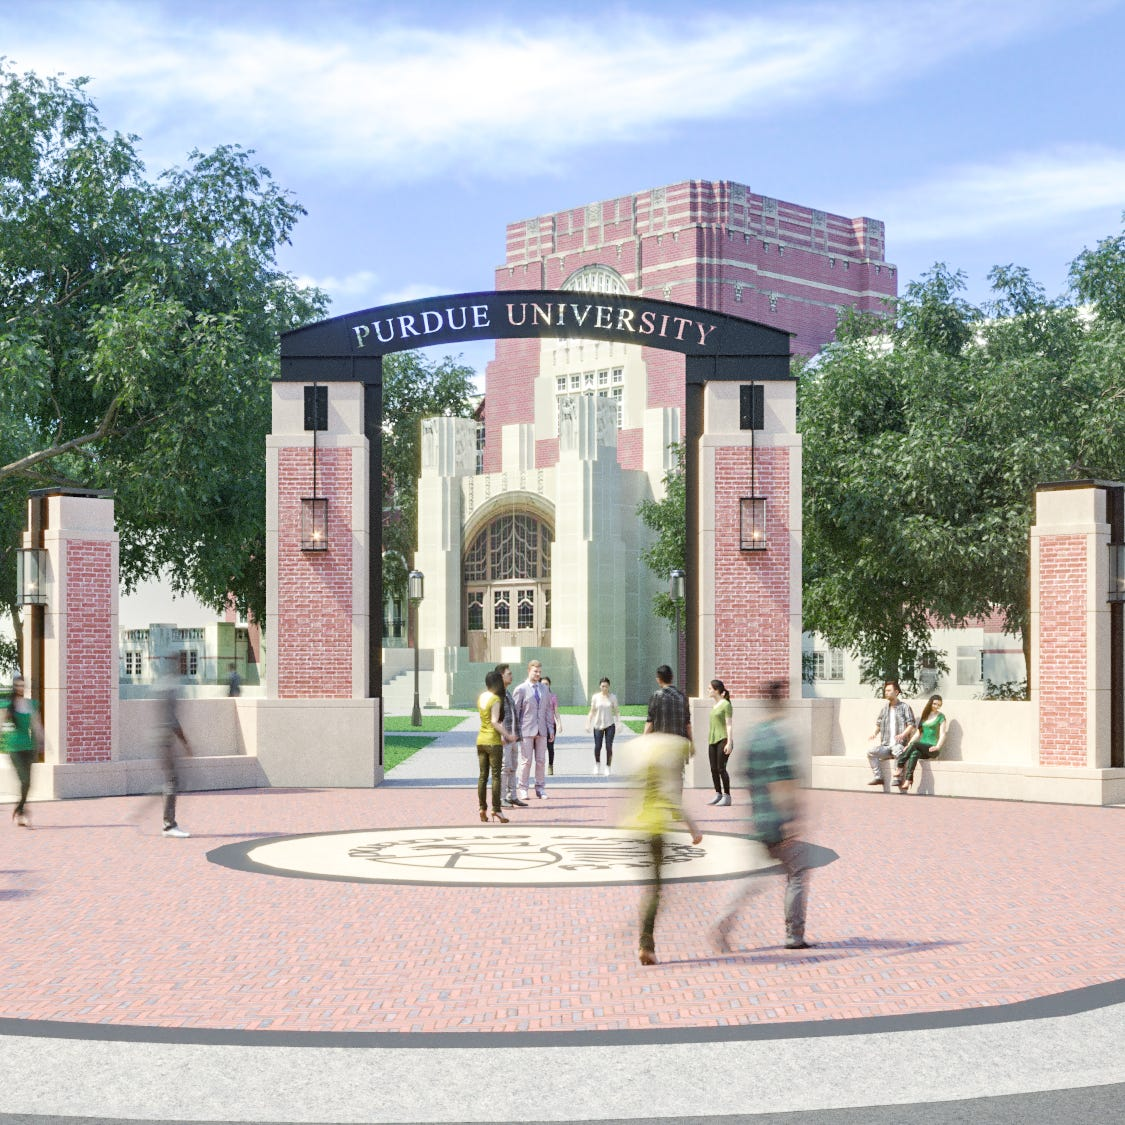 Bangert: As Purdue starts $2M gateway, questions linger on a tribute monument demolition